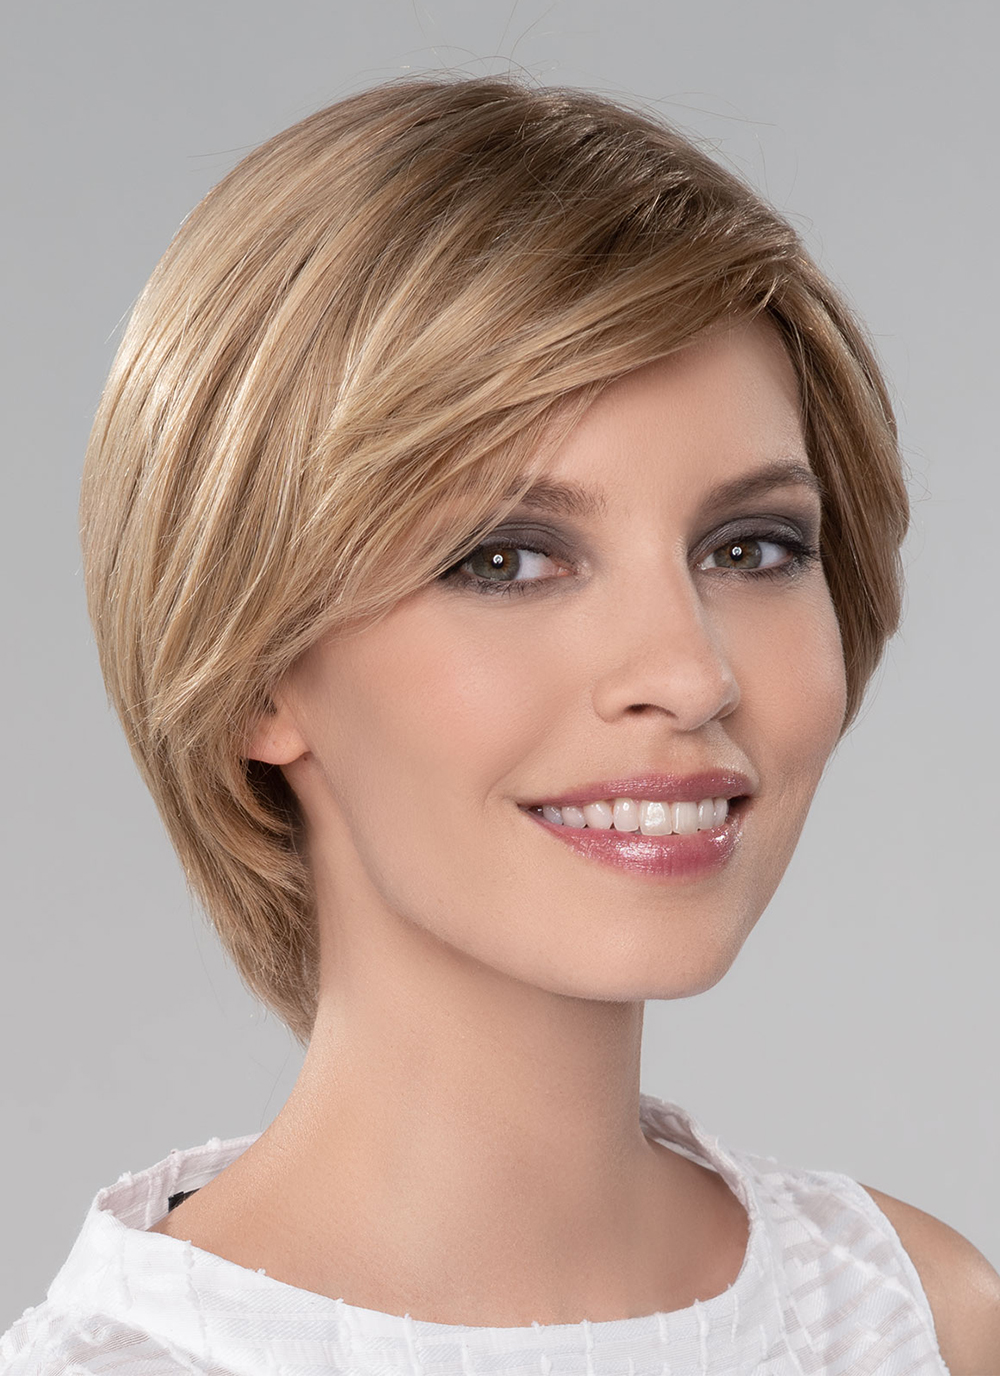 Dia | A hand-tied monofilament top and a 100% hand-tied cap create ample styling options, as well as gives the appearance of natural hair growth from the scalp.